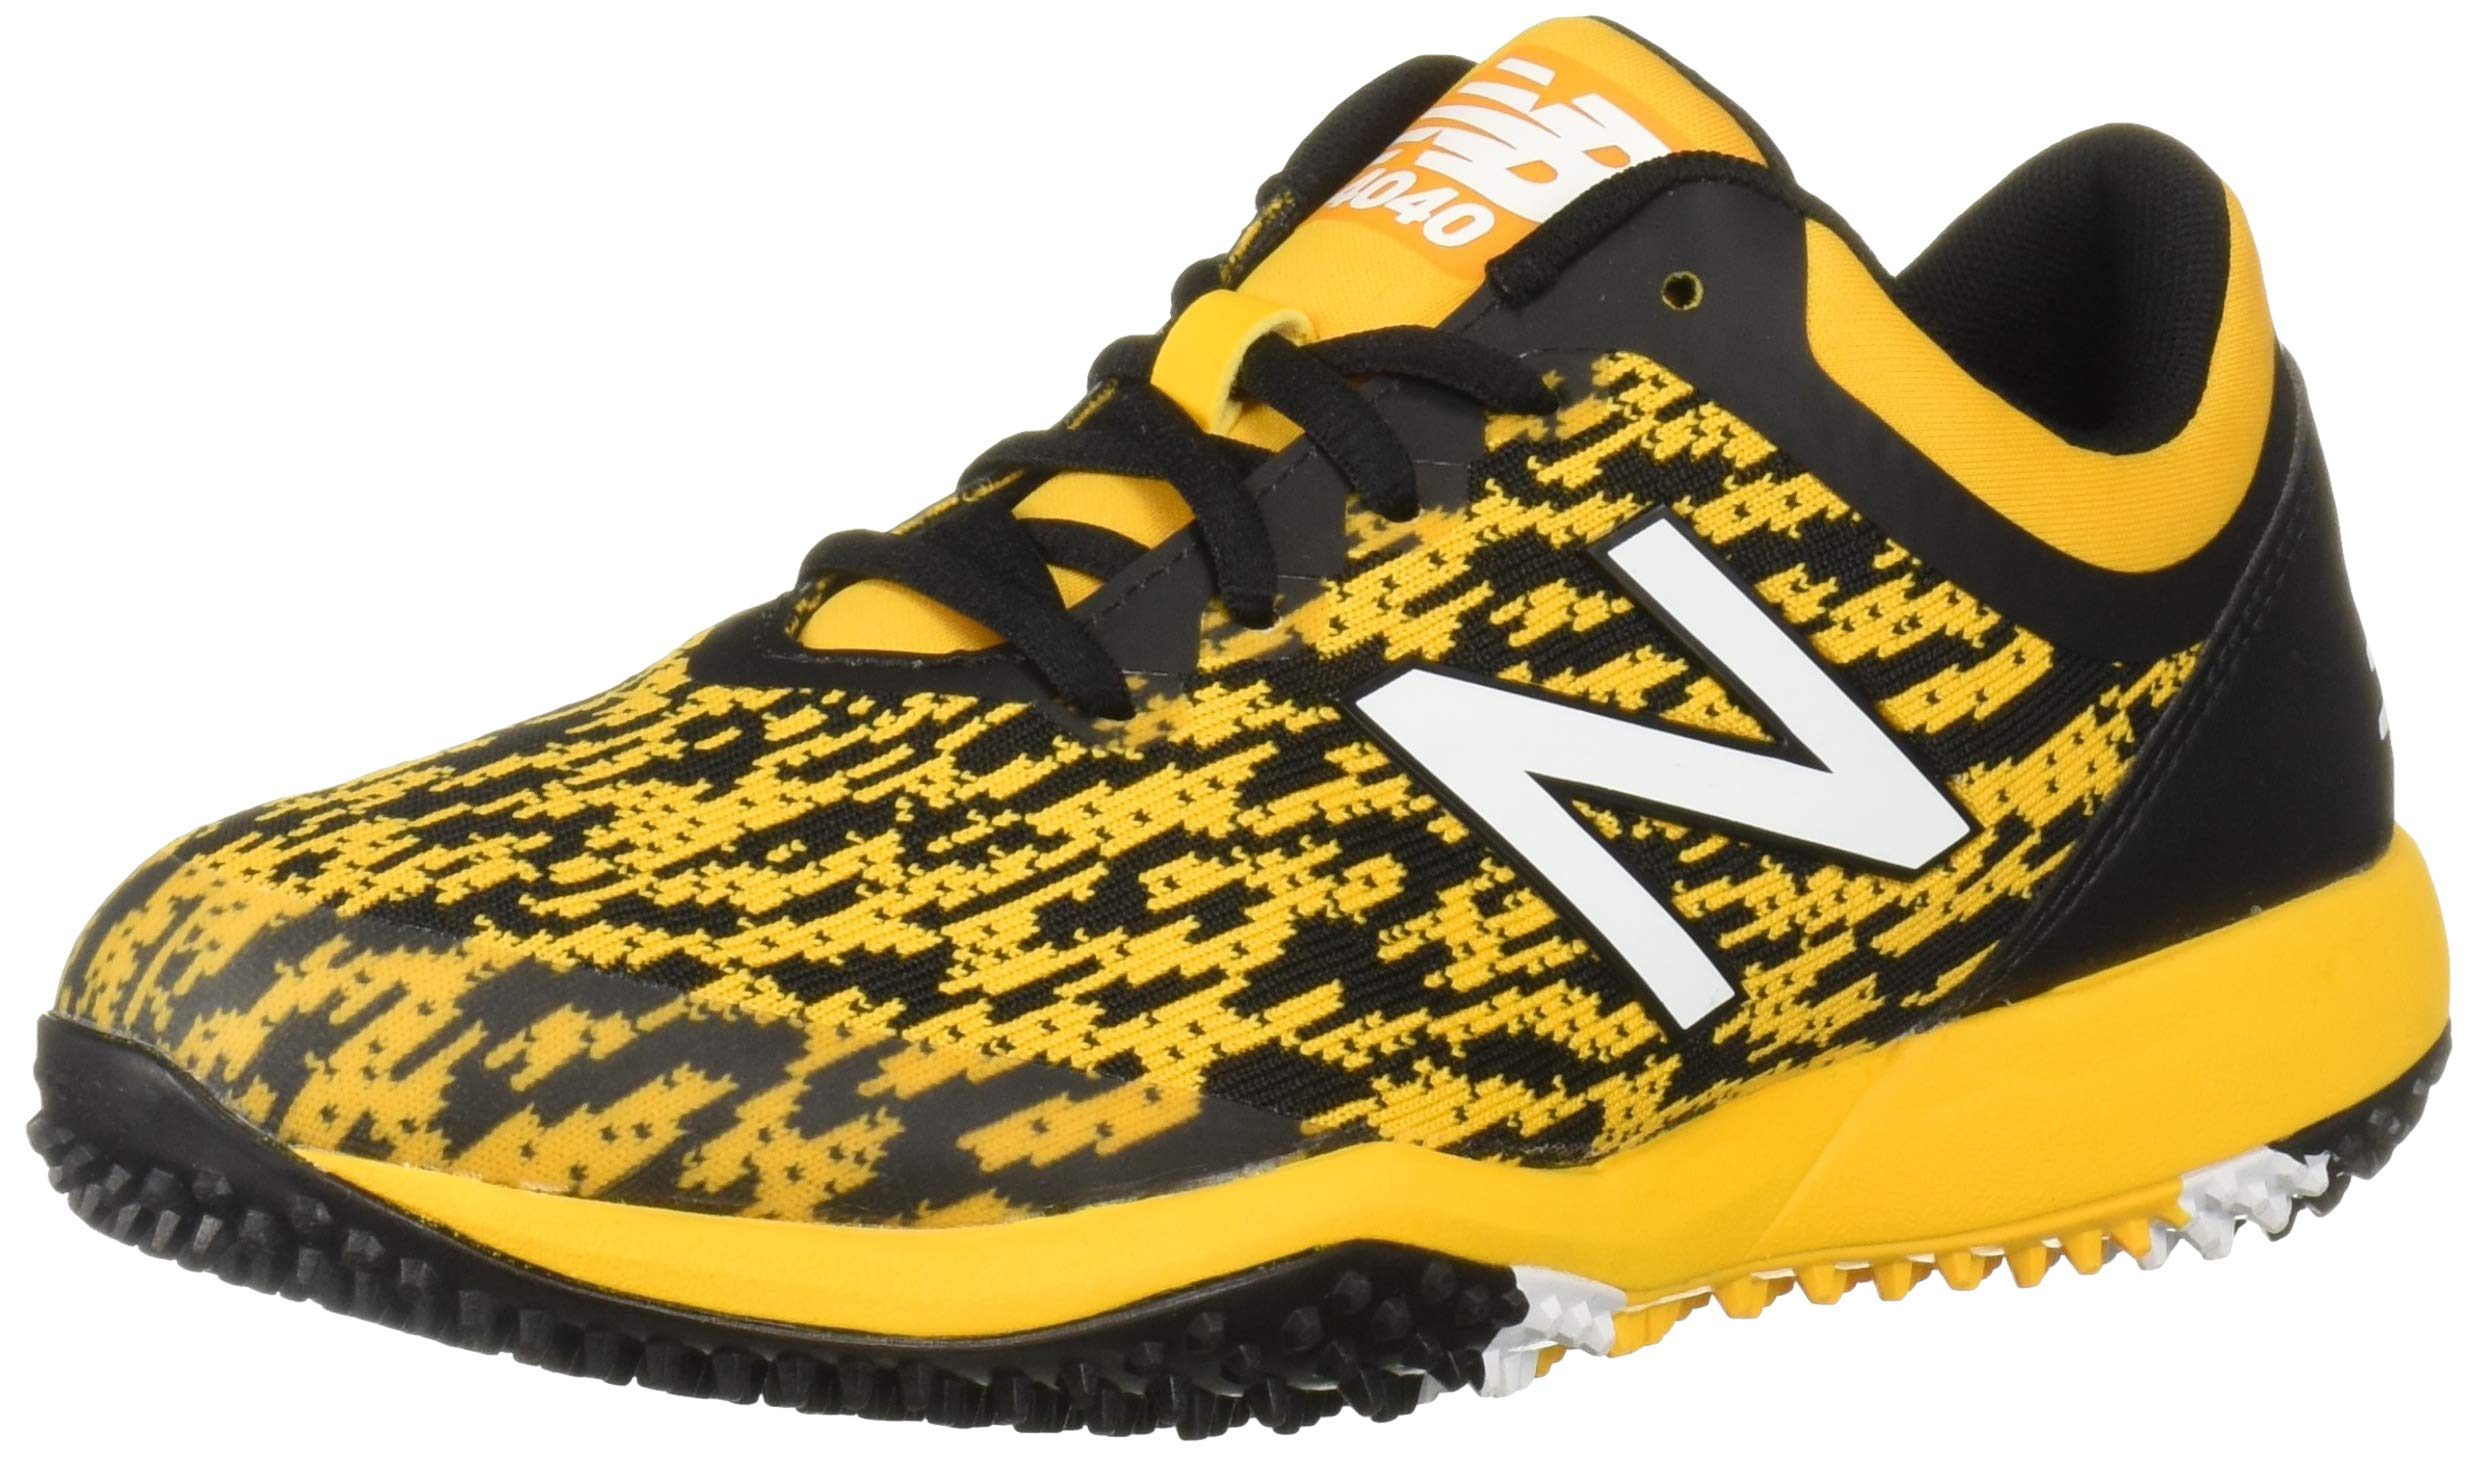 New Balance Men's 4040v5 Turf Track and Field Shoe, Black/Yellow, 5 D US